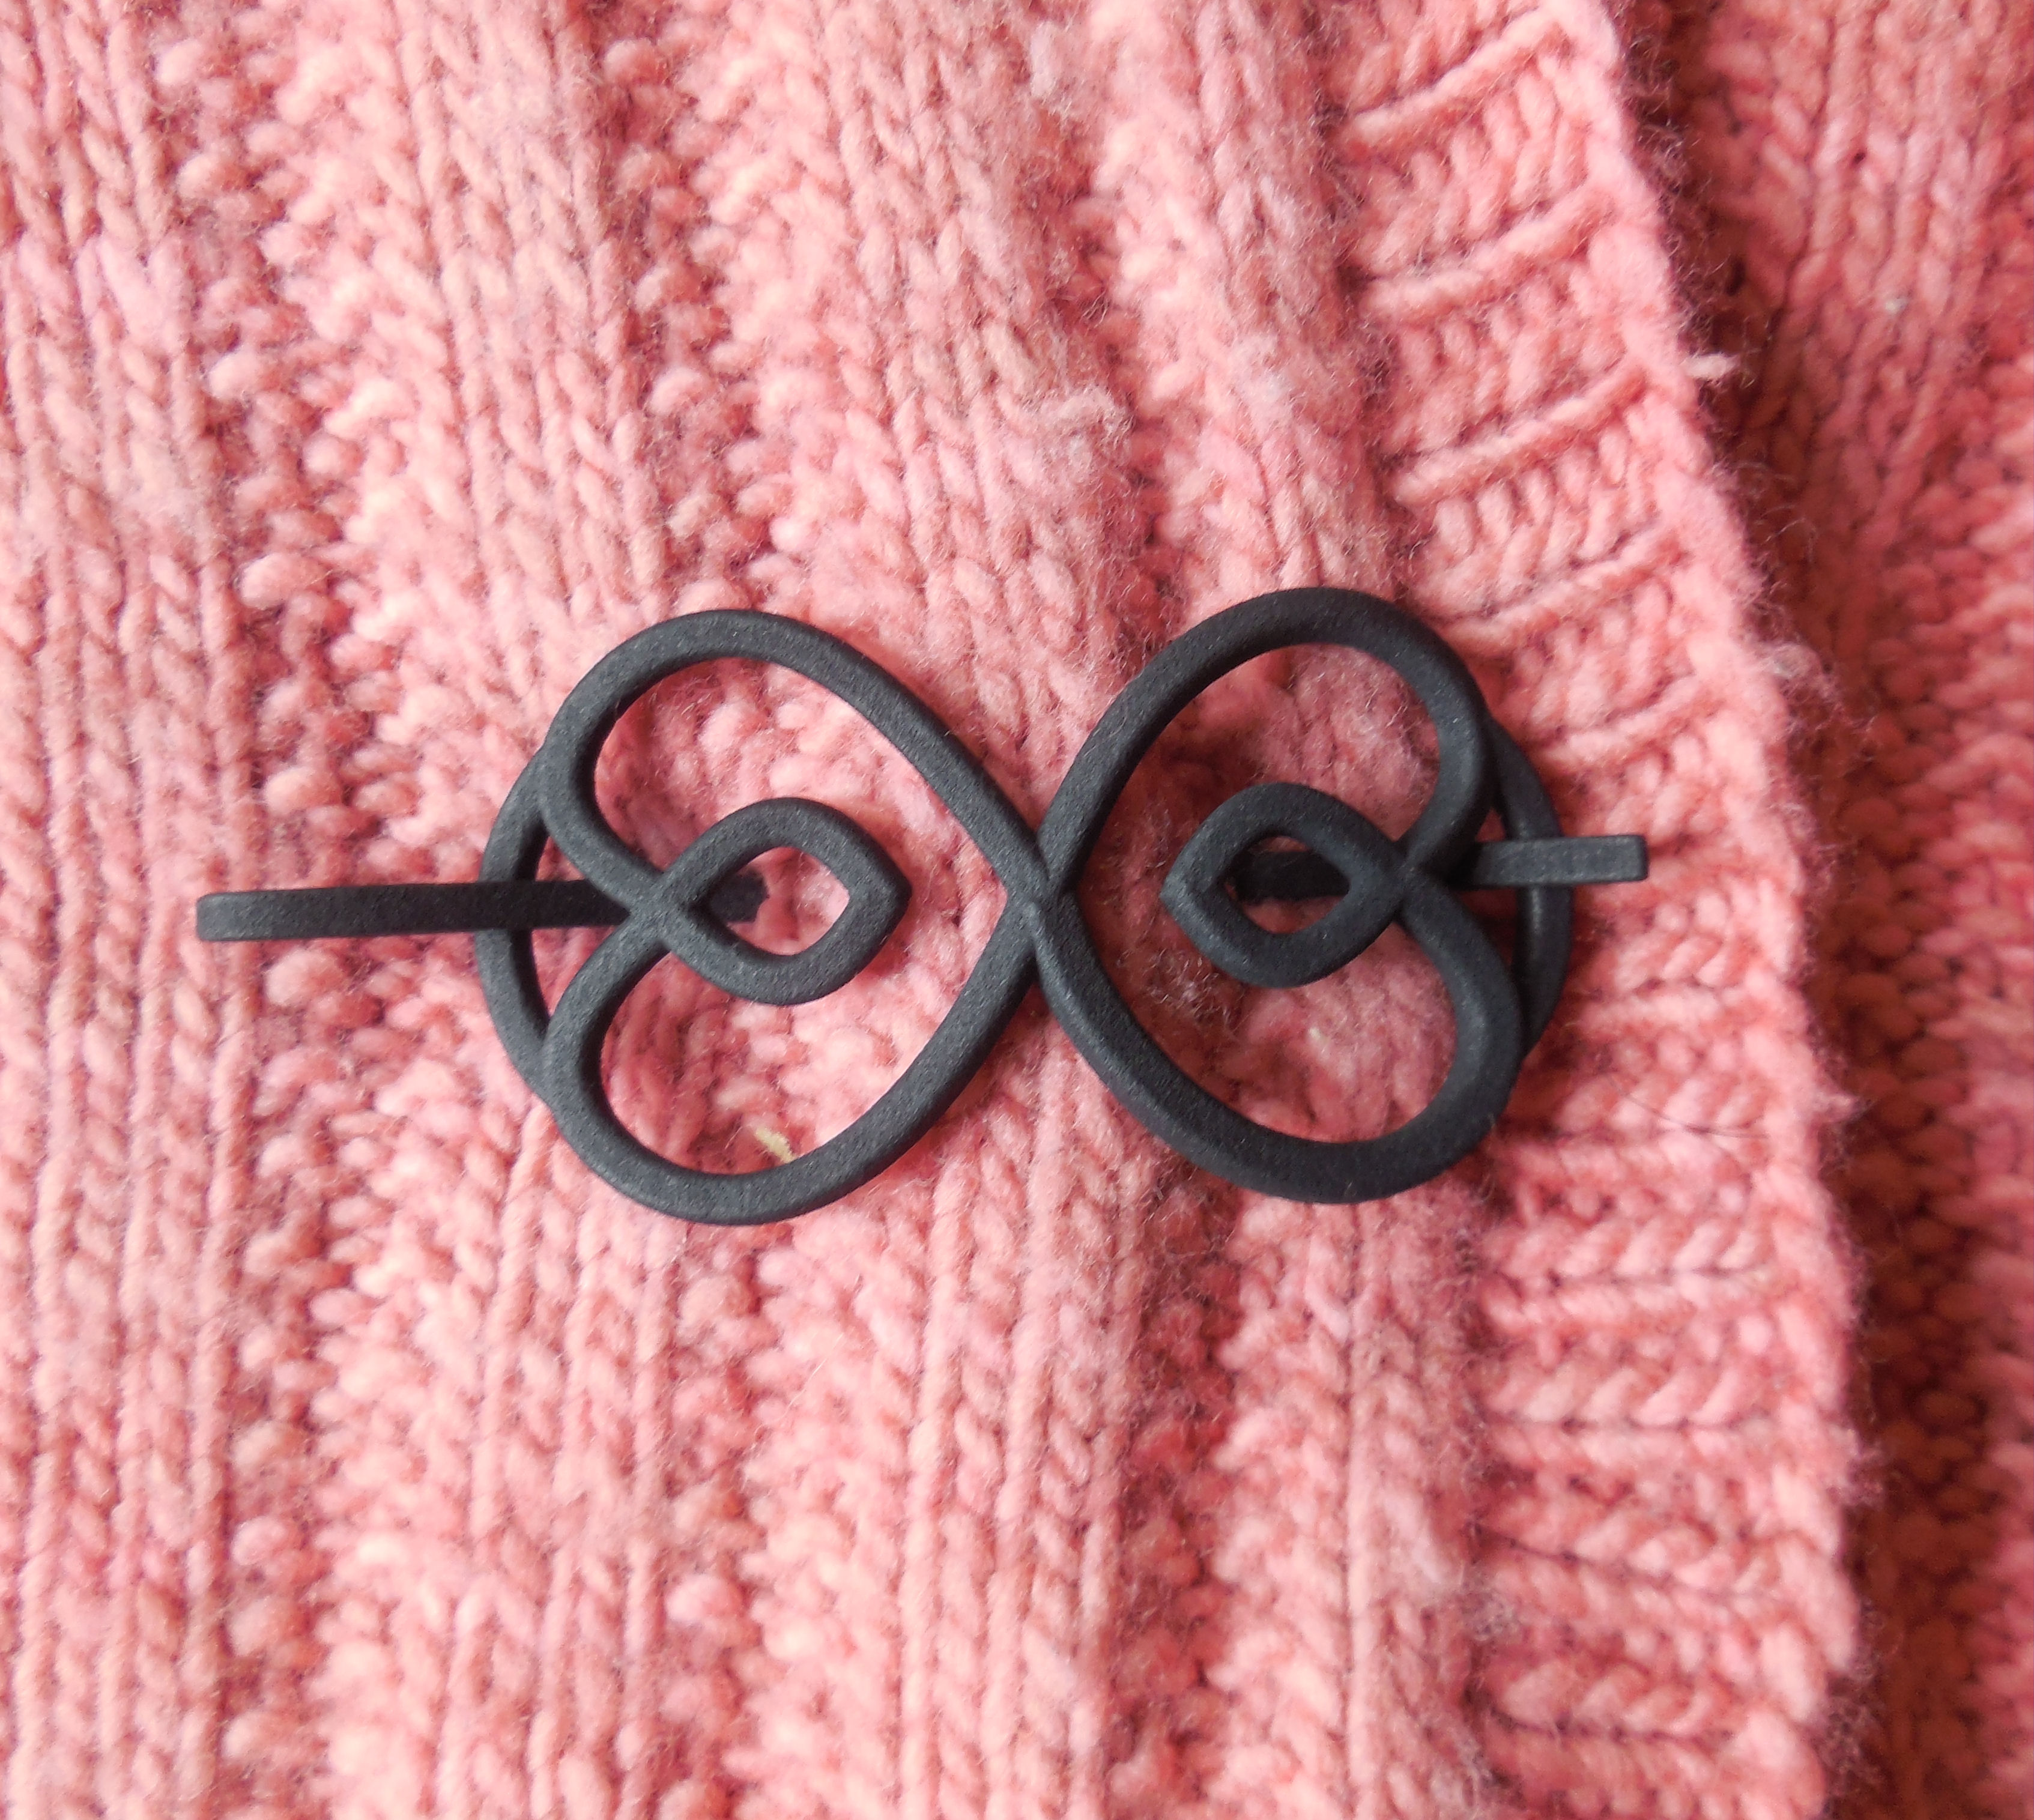 Knitting related items